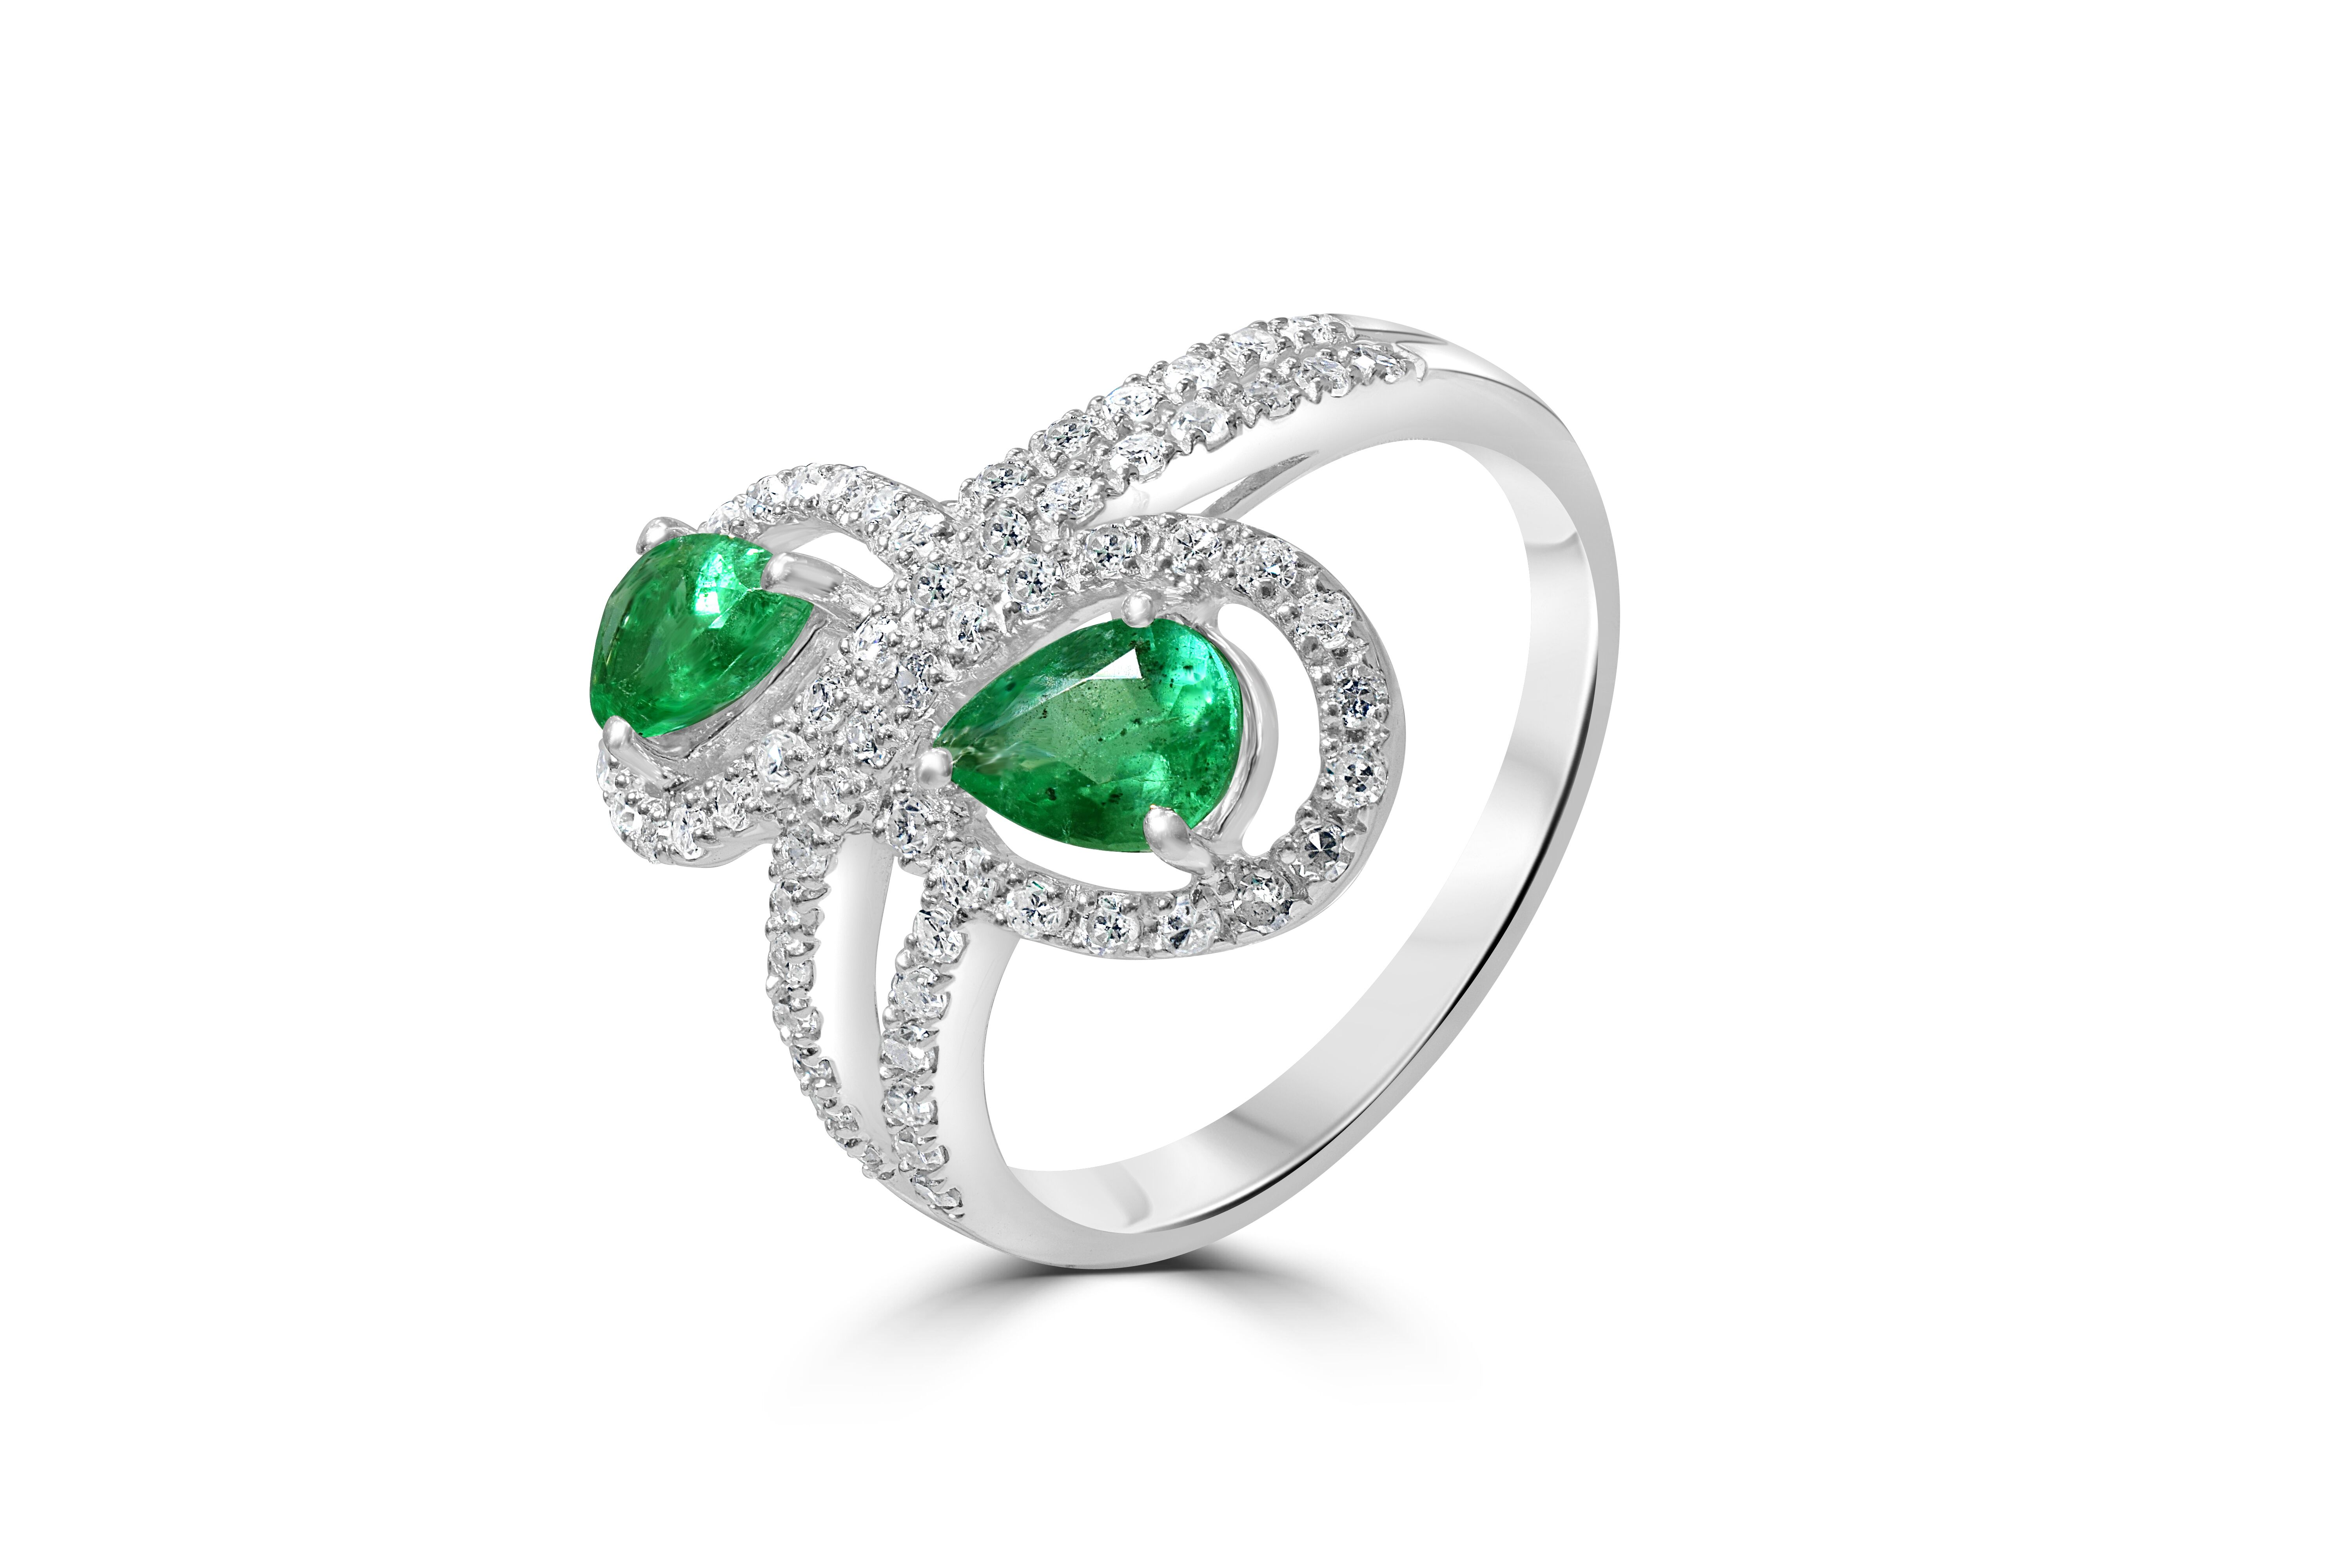 Two Stone Emerald and Diamond 9ct White Gold Ring RRP £2695 Size N